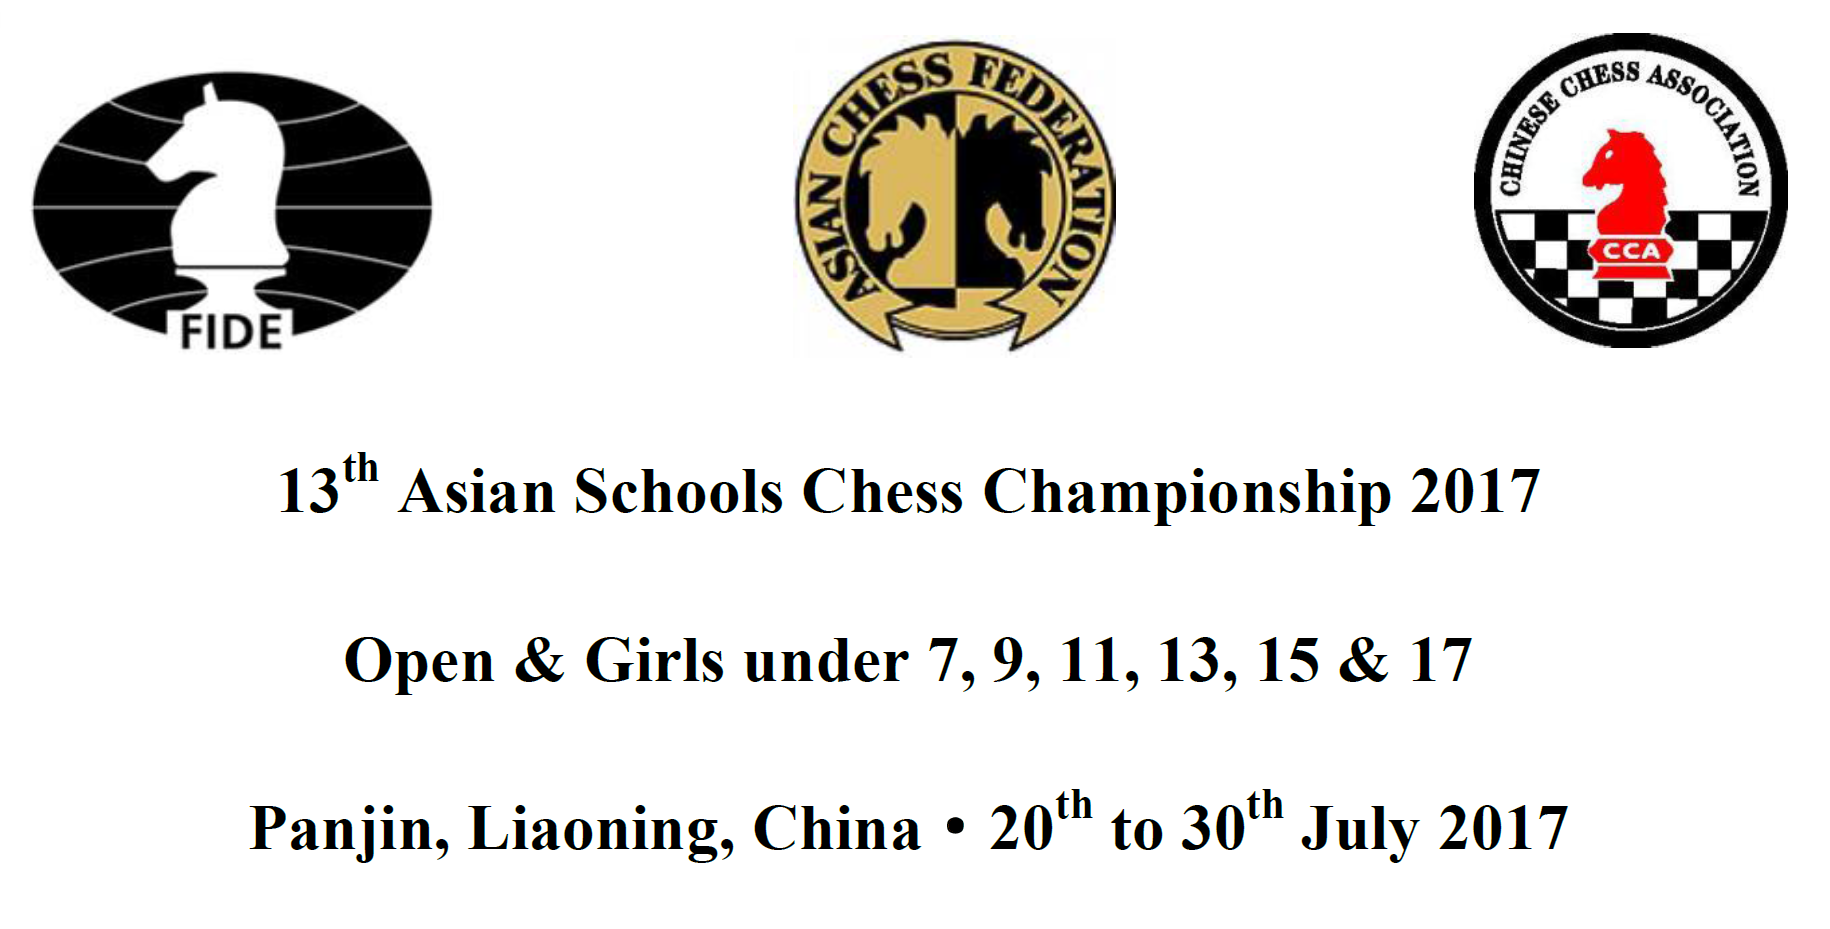 13th Asian Schools Chess Championships